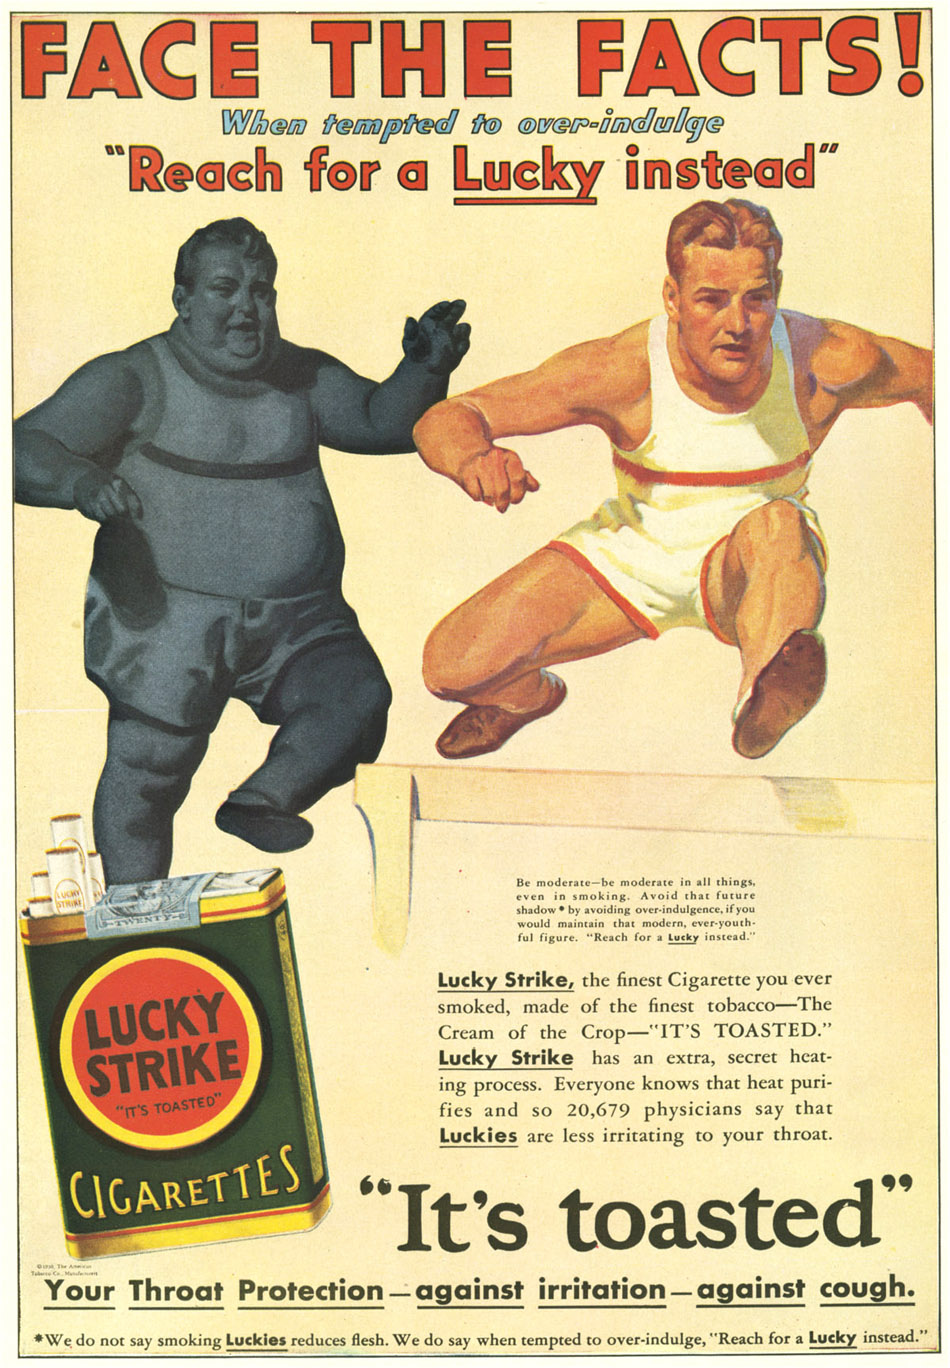 vintage ad for lucky strikes with runners